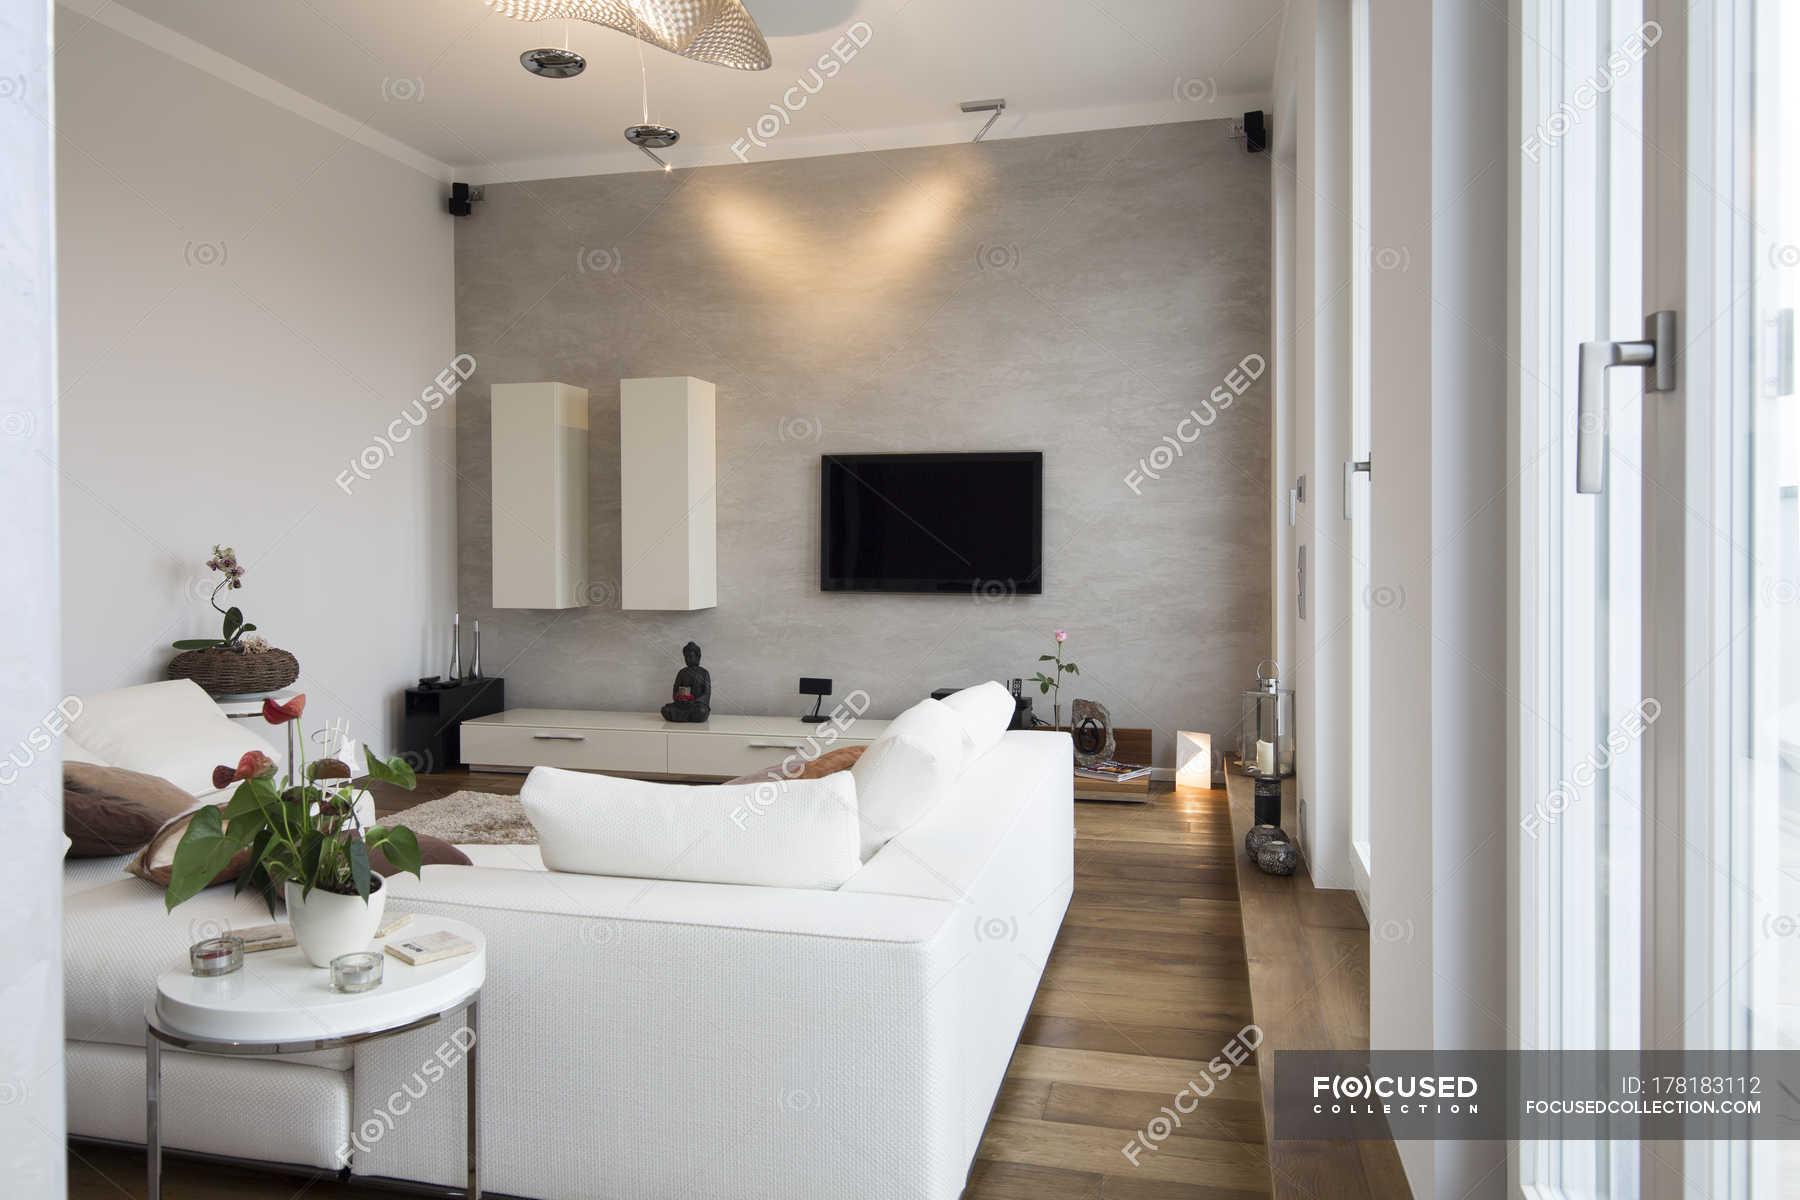 Interior Of Modern Flat Living Room With White Couch Showcase Interiors Indoor Stock Photo 178183112